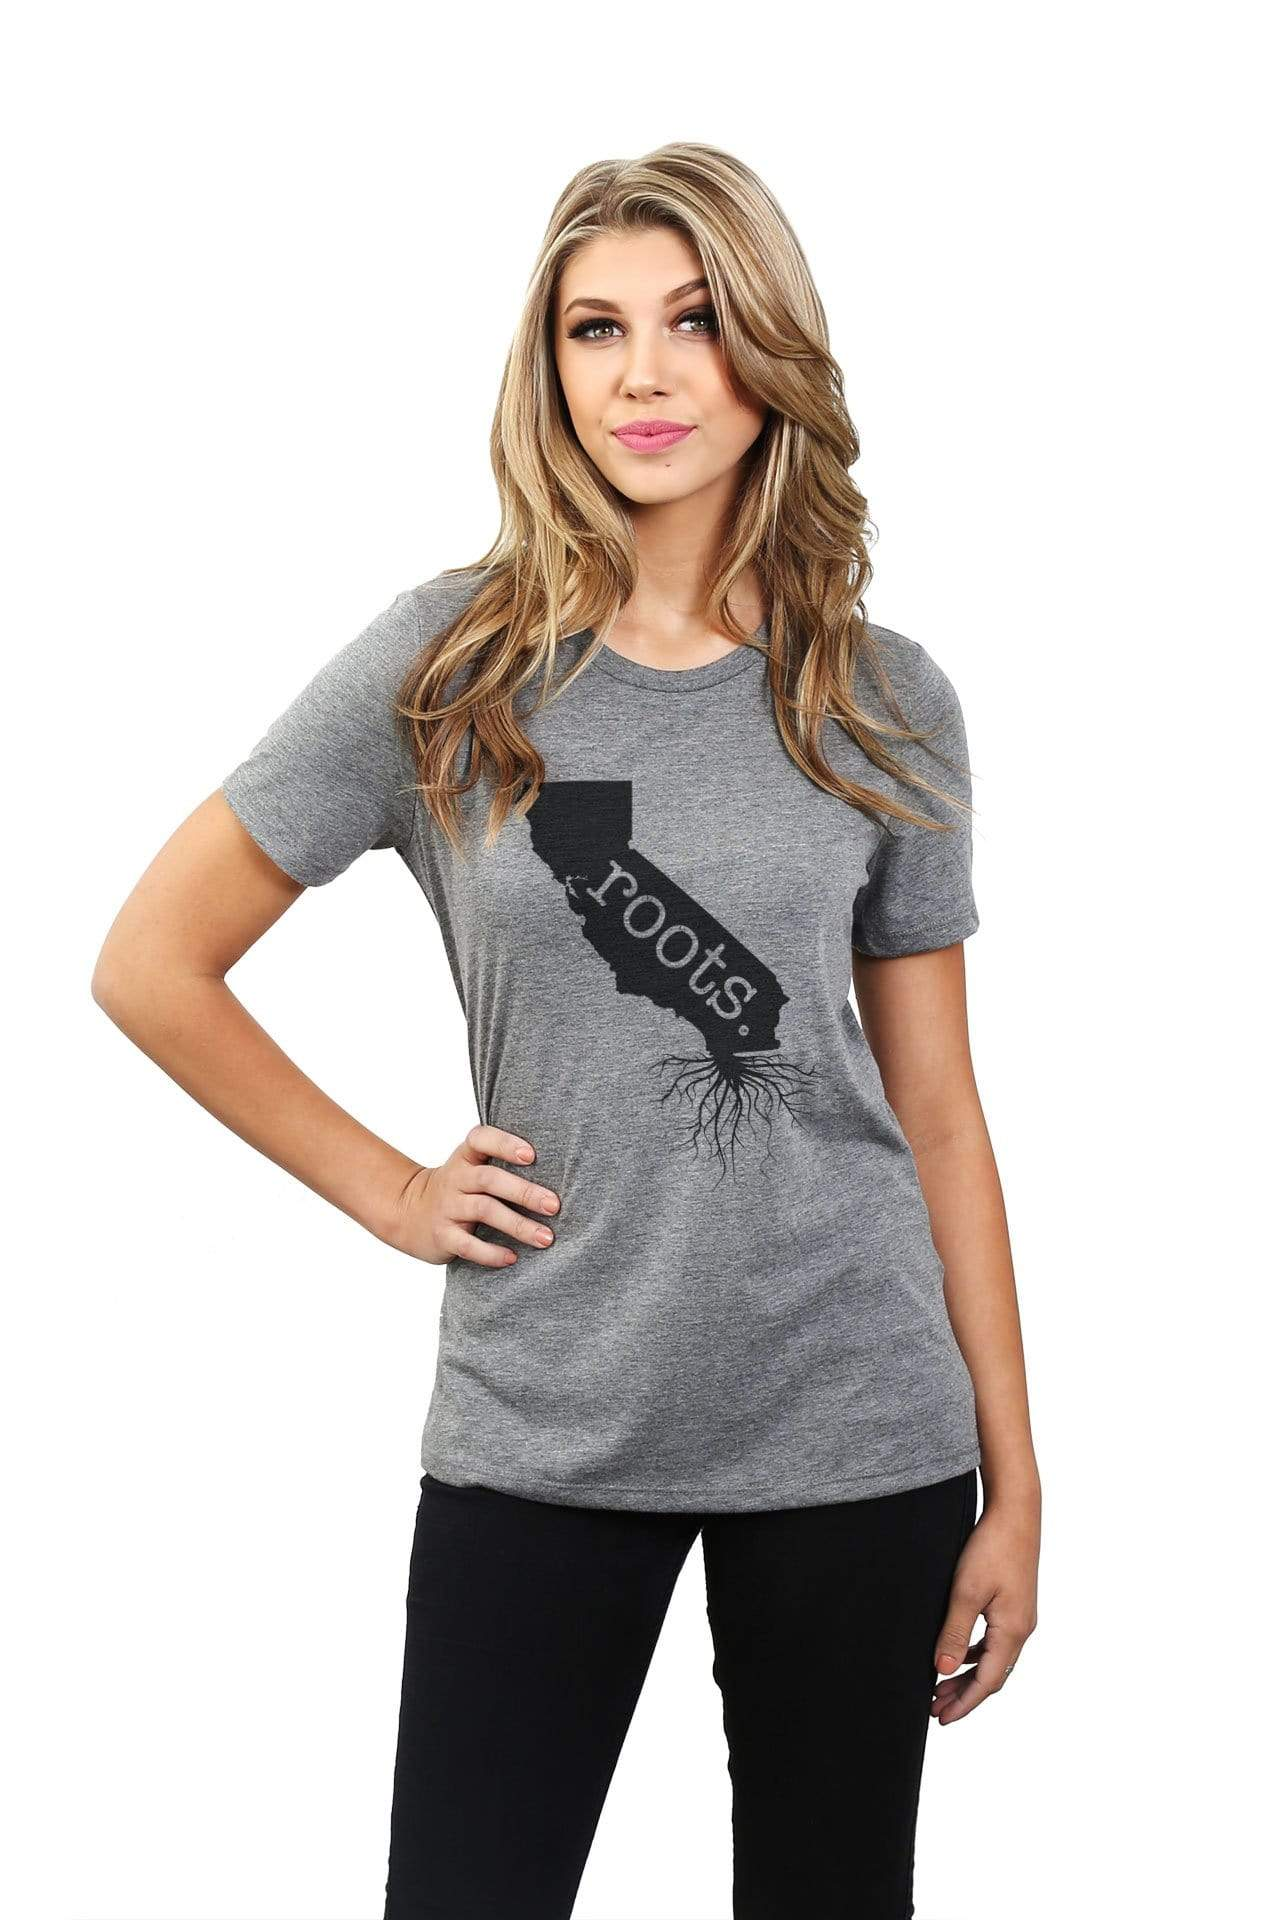 Home Roots State California CA Women Heather Grey Relaxed Crew T-Shirt Tee Top